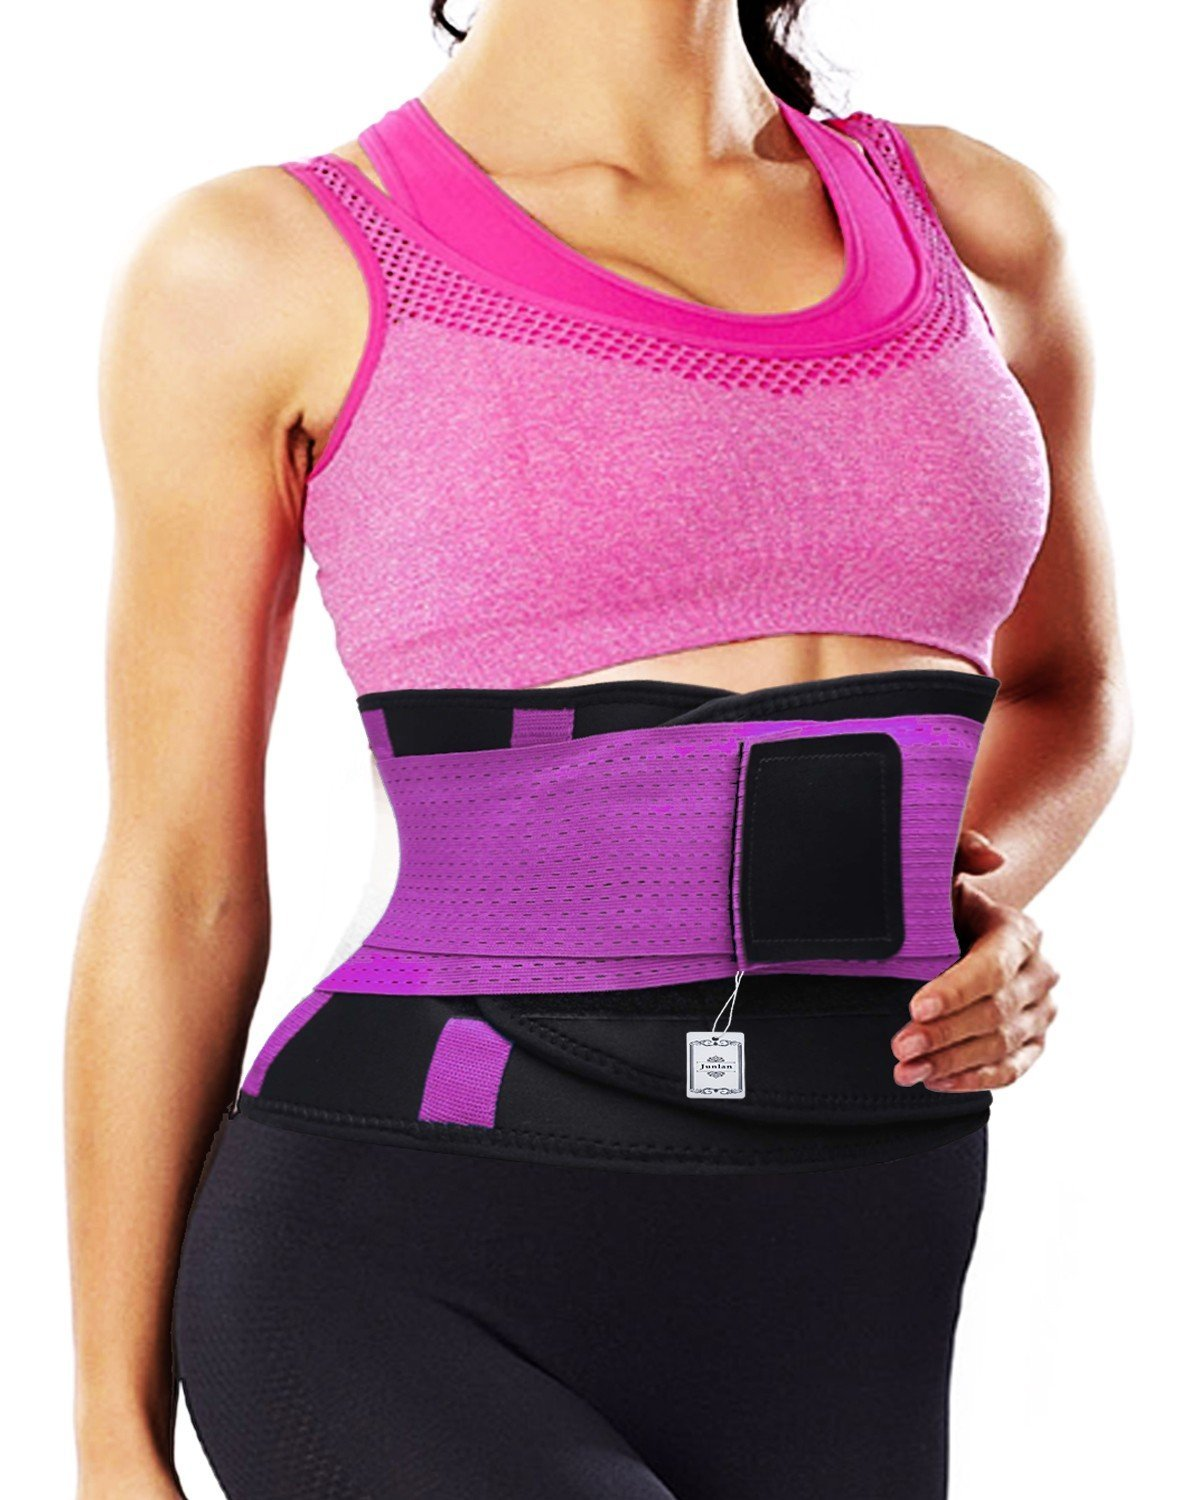 abdominal workout waistband - HD 1200×1500